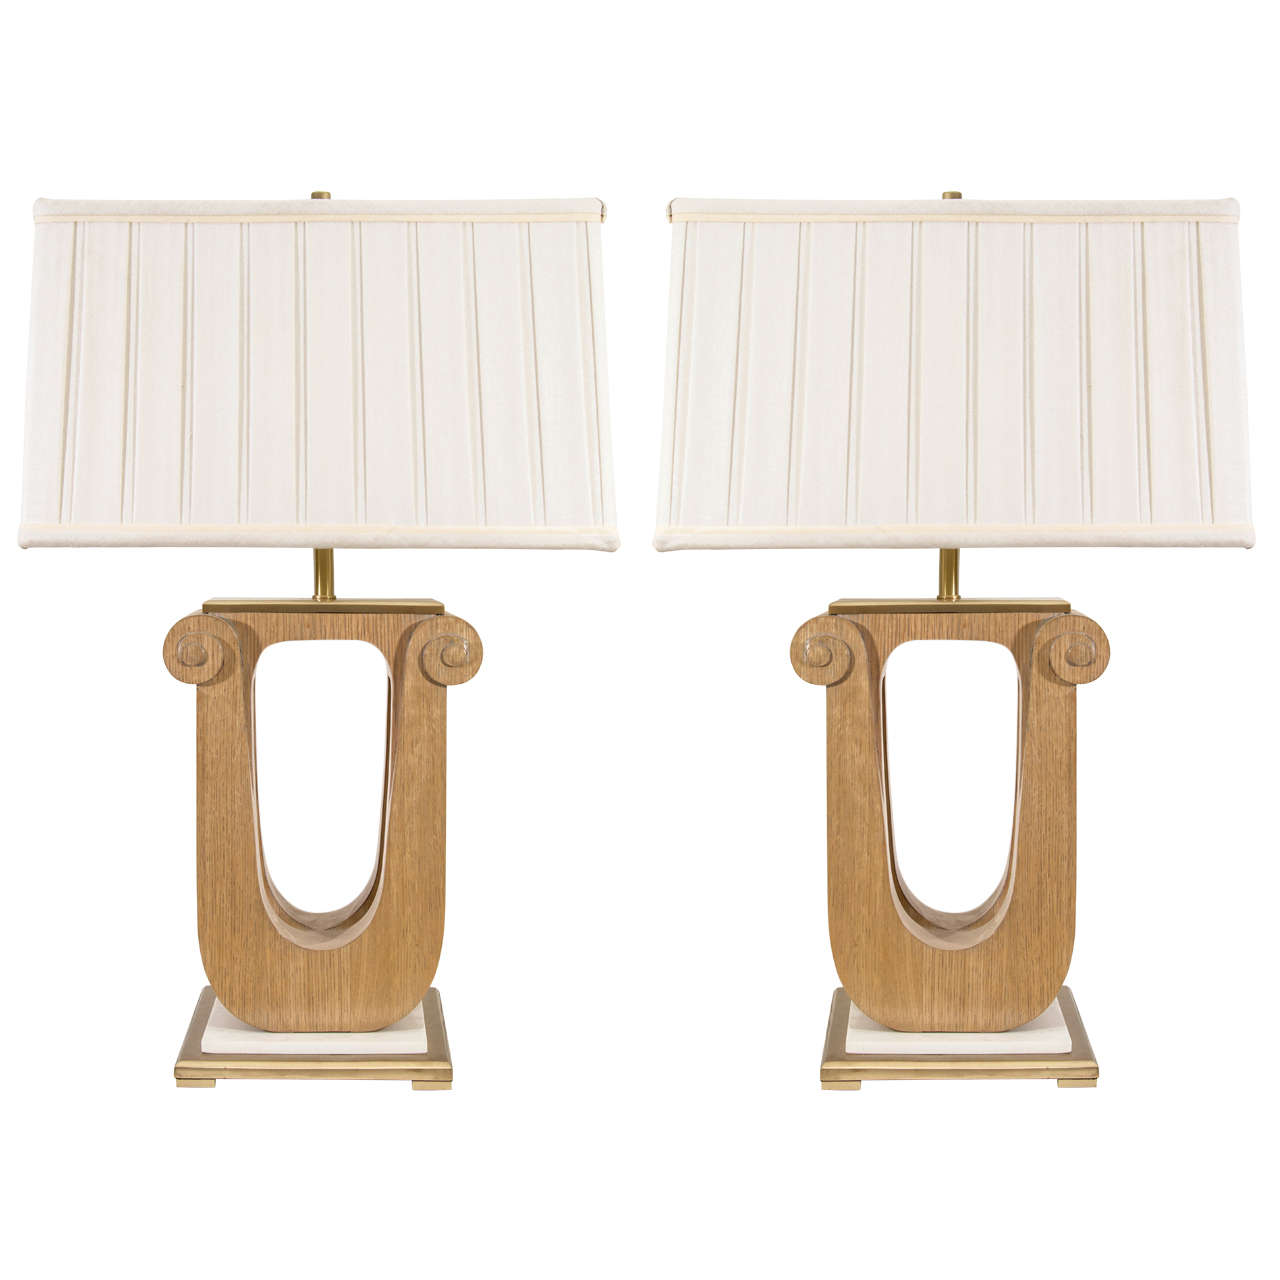 Pair of vintage art deco style wooden lamps at 1stdibs for Deco style retro